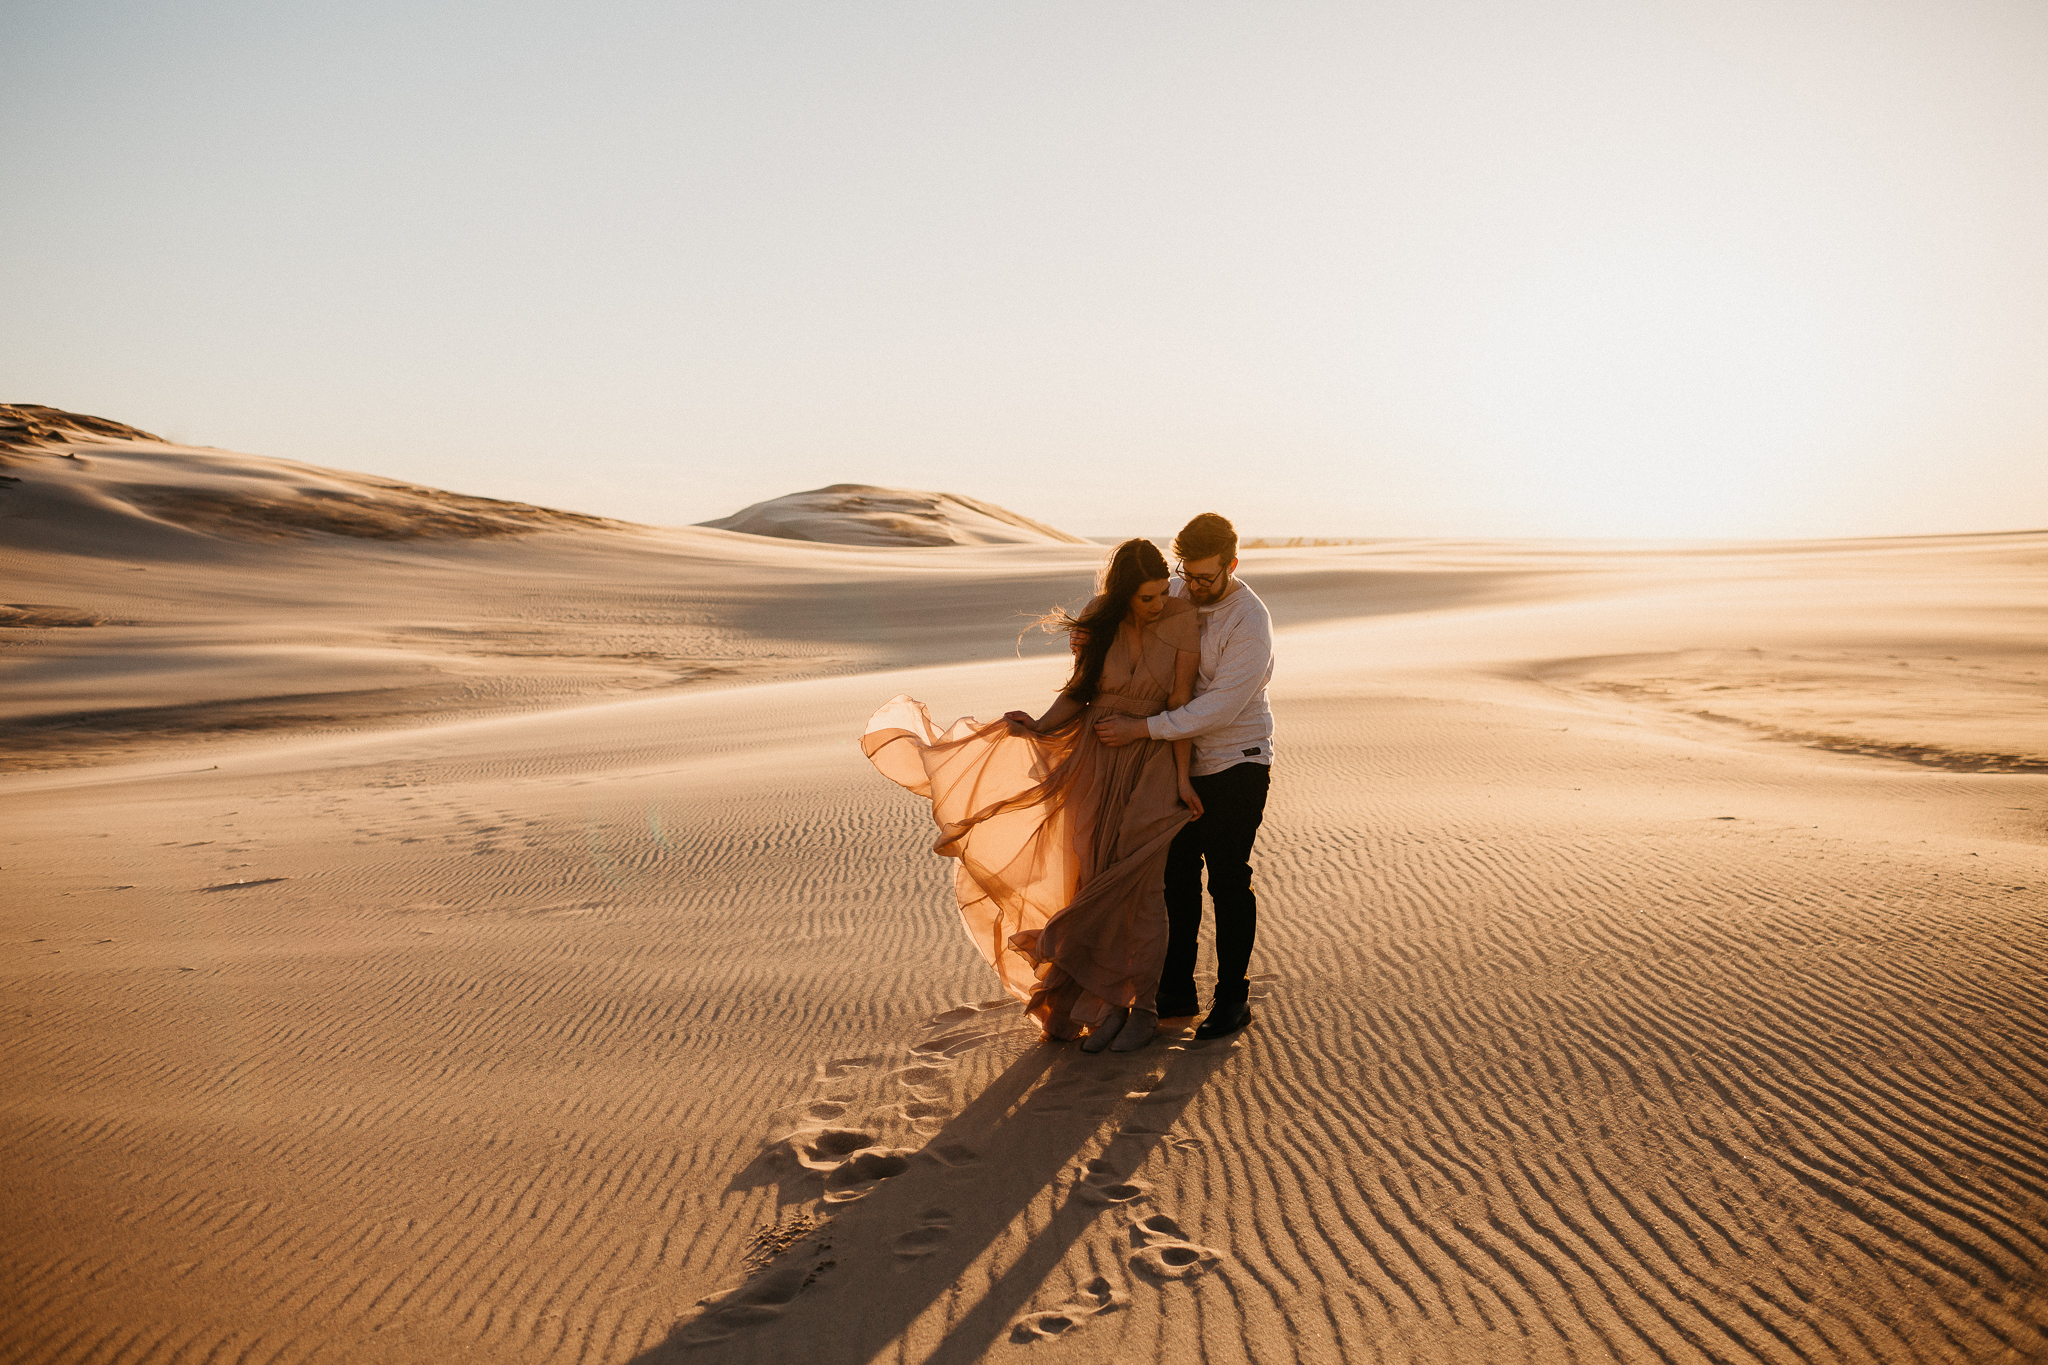 eastlyn-bright-silver-lake-sand-dunes-michigan-wedding-engagement-photographer-52.jpg